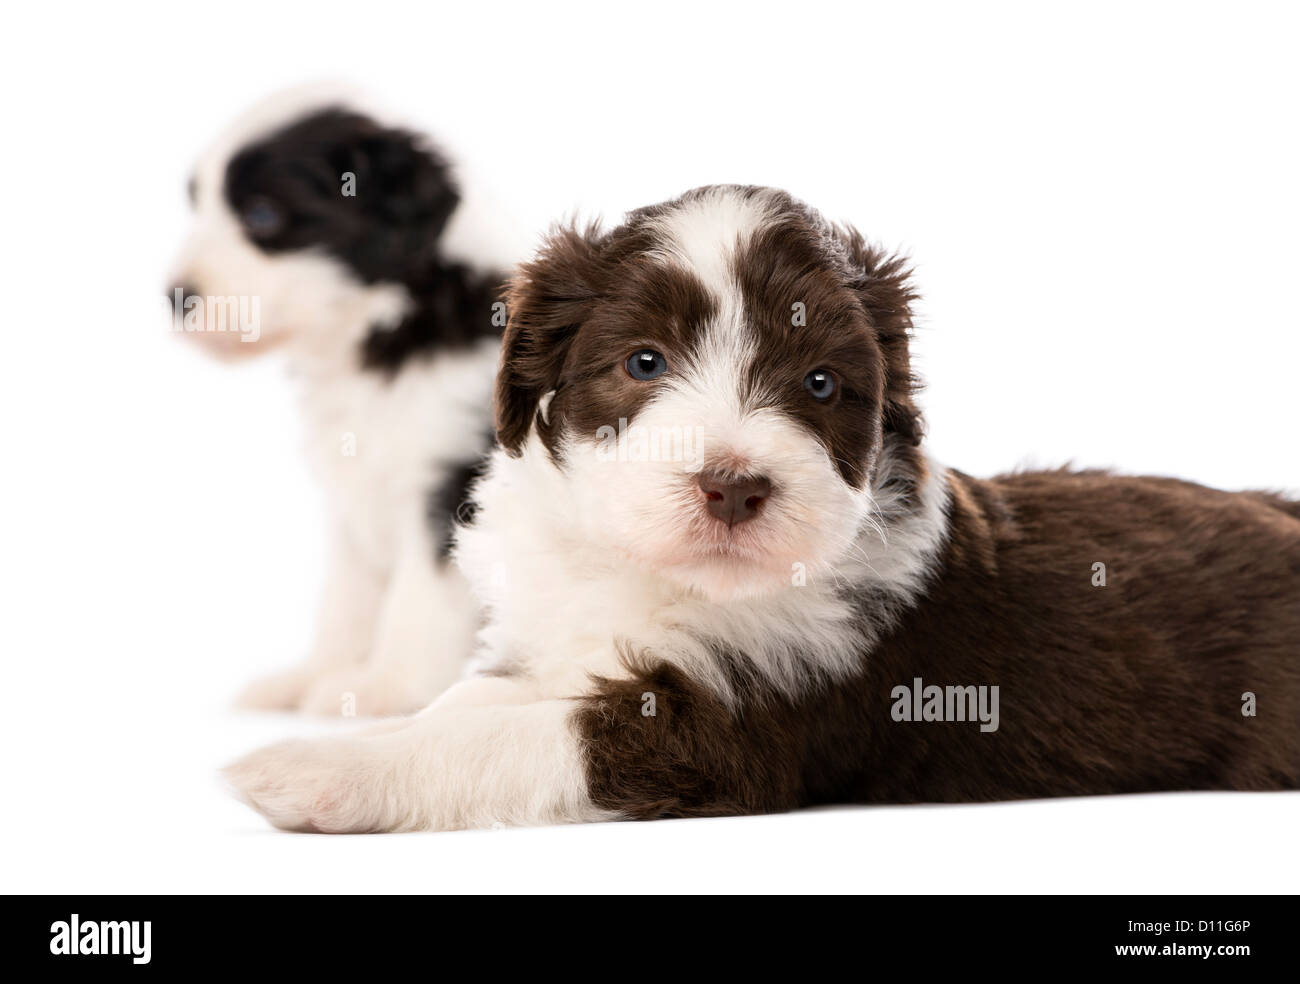 Bearded Collie puppies, 6 weeks old, sitting and lying against white background - Stock Image